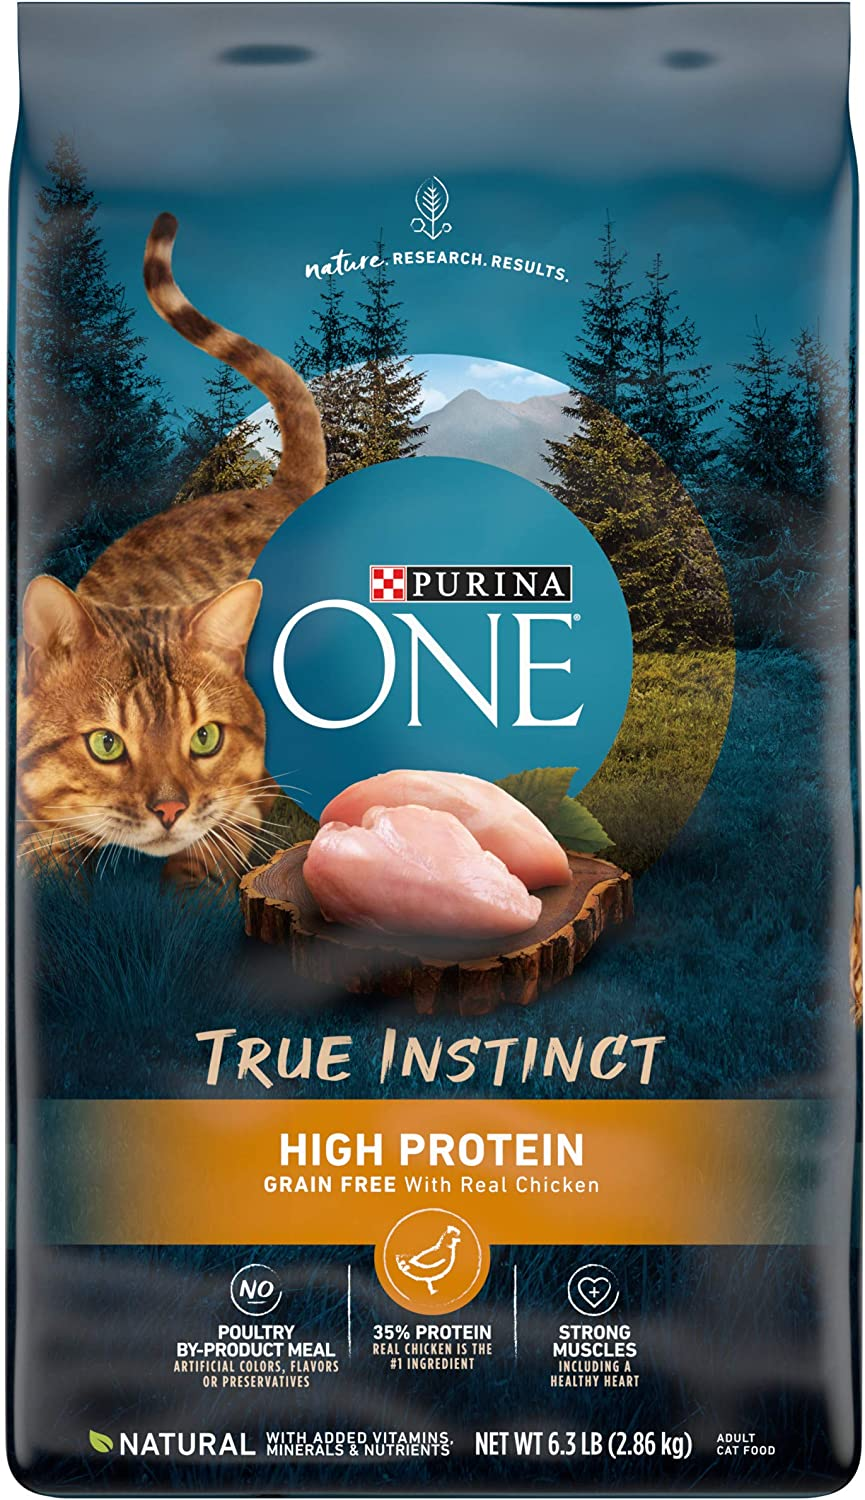 Purina ONE True Instinct Grain Free High Protein, Natural Formula Adult Dry and Wet Cat Food